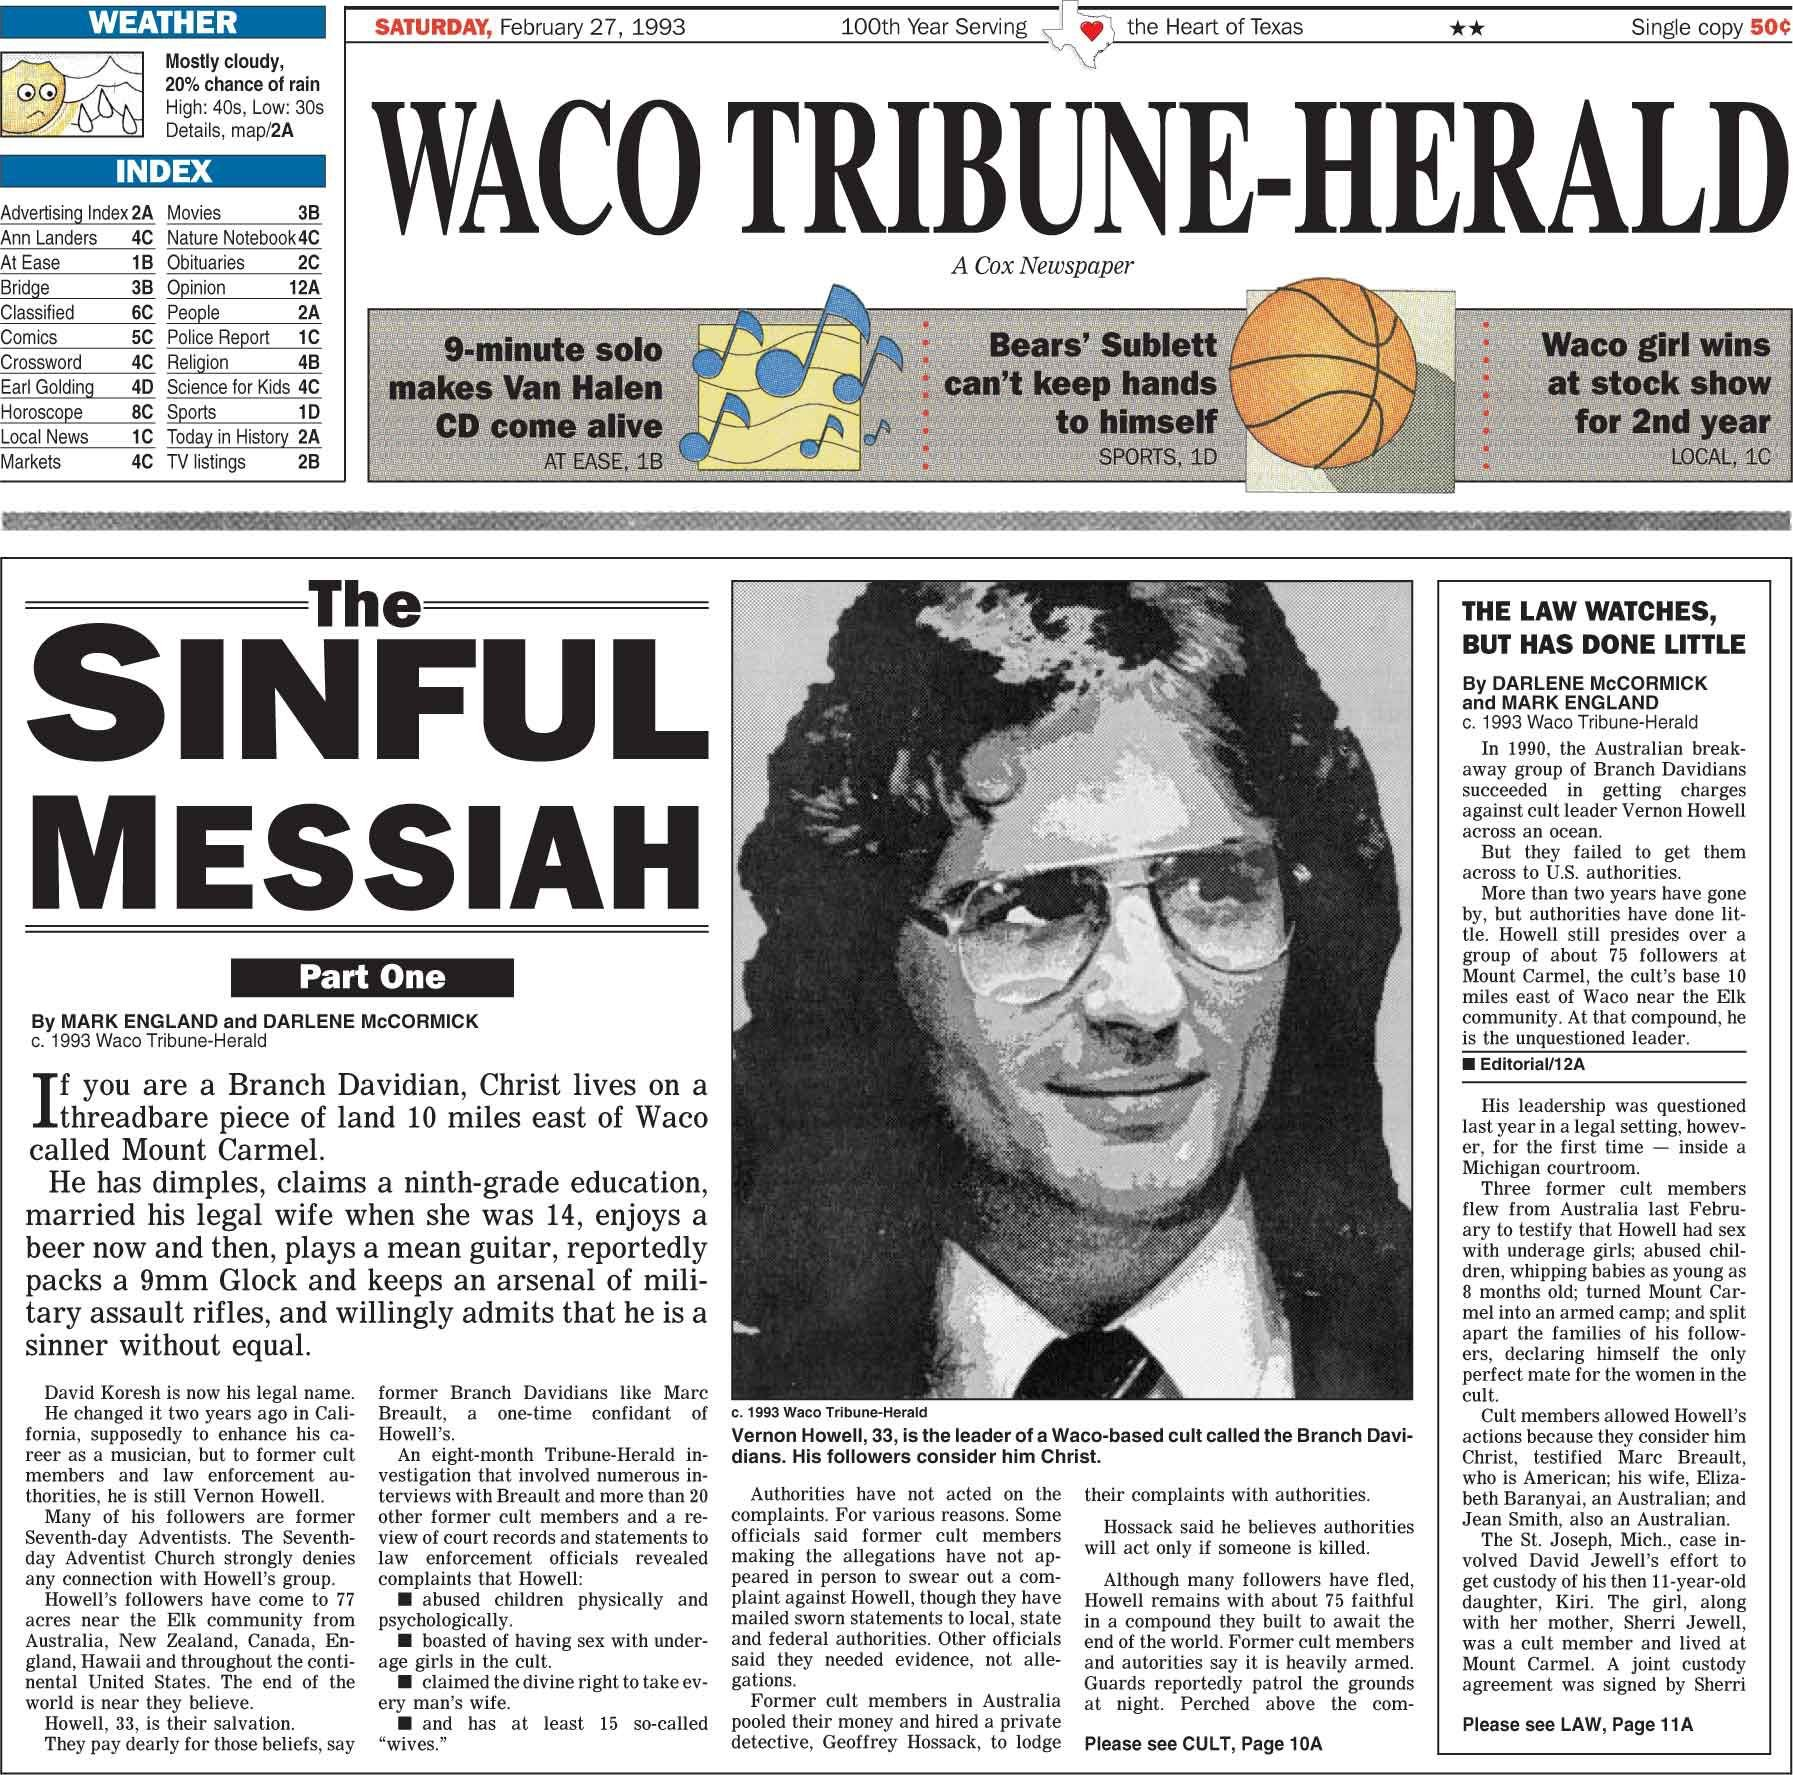 an analysis of the breakdowns in communication between fbi and the branch davidians Return to transcripts they eventually called themselves the branch davidians and the standoff between the fbi and the branch davidian.